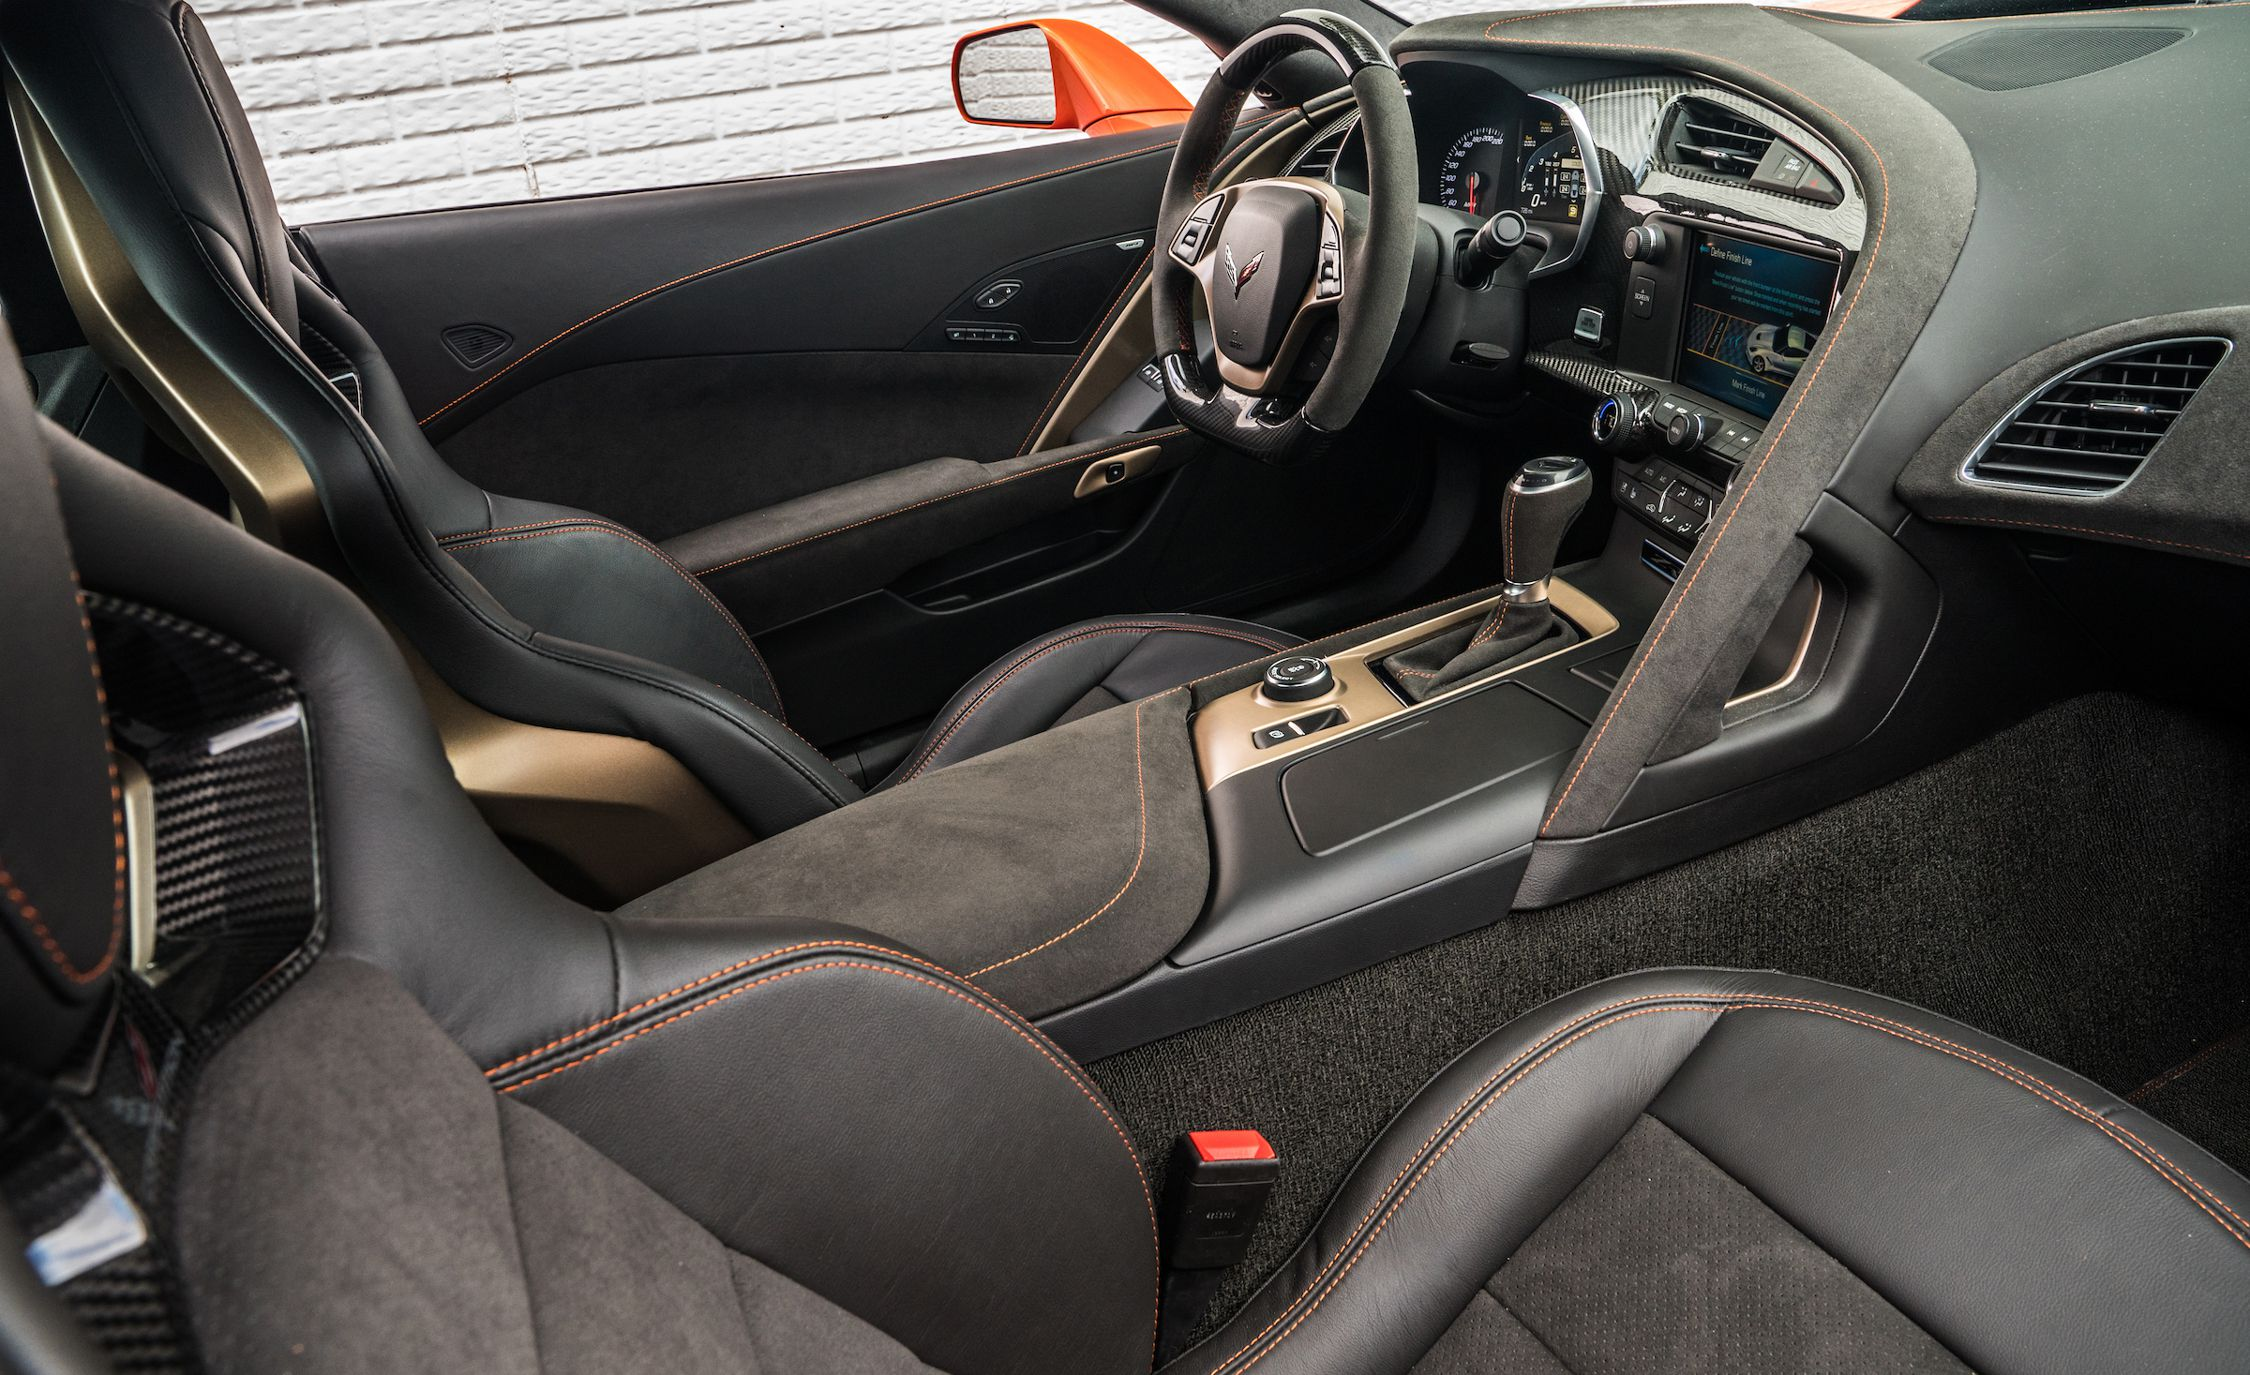 2019 Chevrolet Corvette Zr1 Interior Detail Wallpapers 26